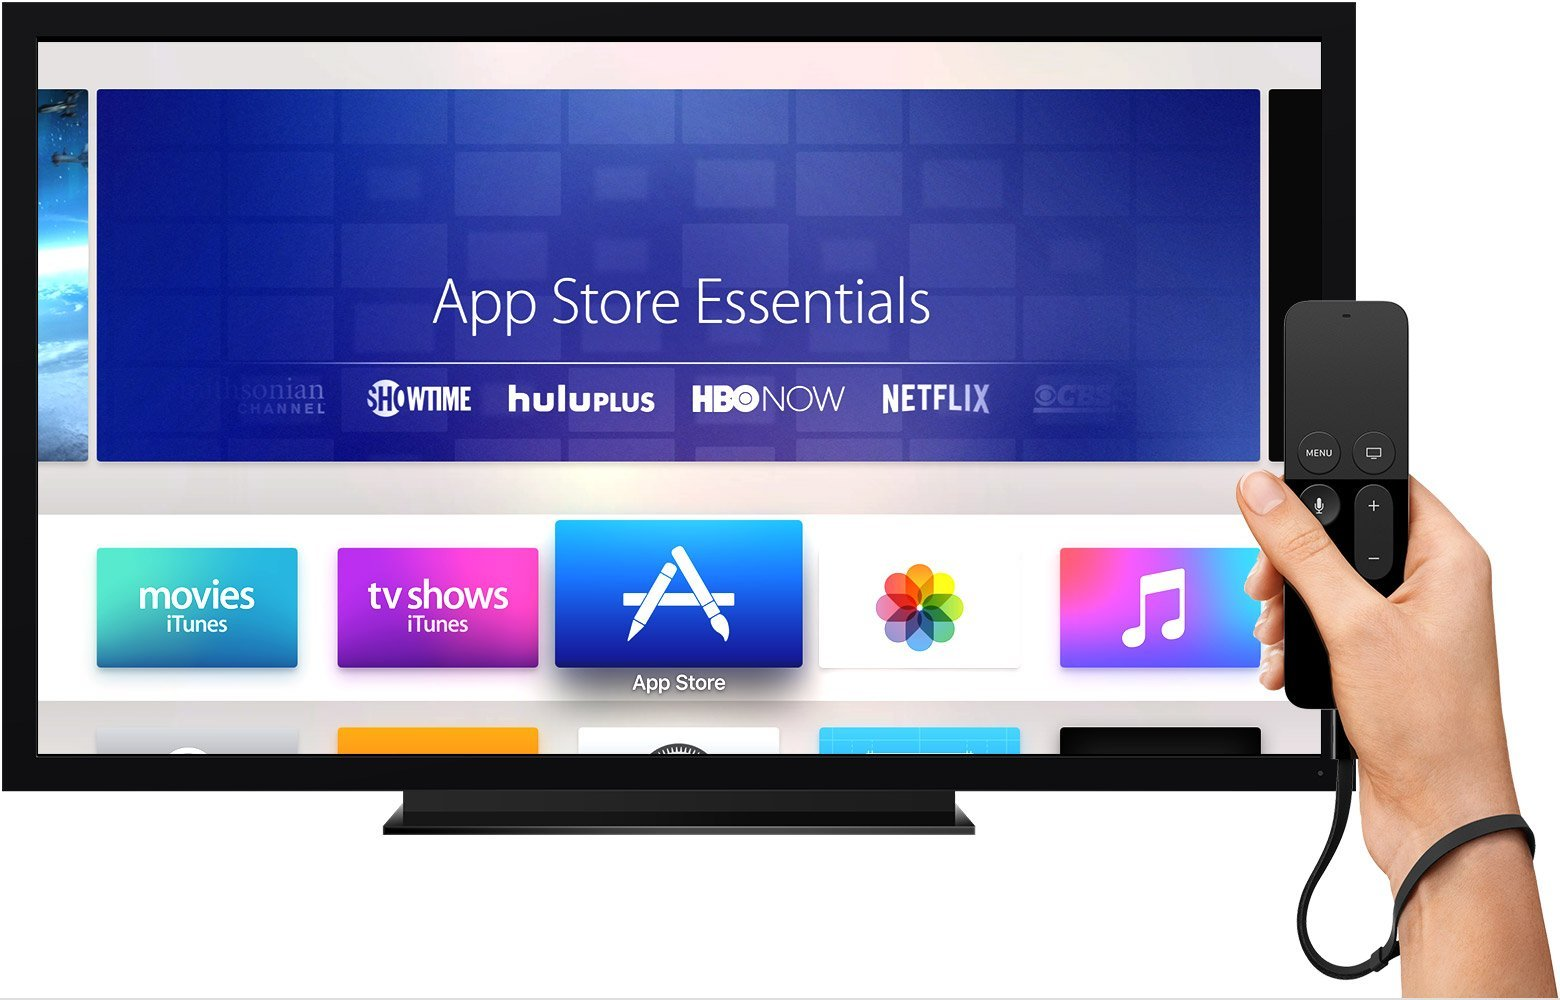 10 apps on apple tv you should download right now - apple tv hacks